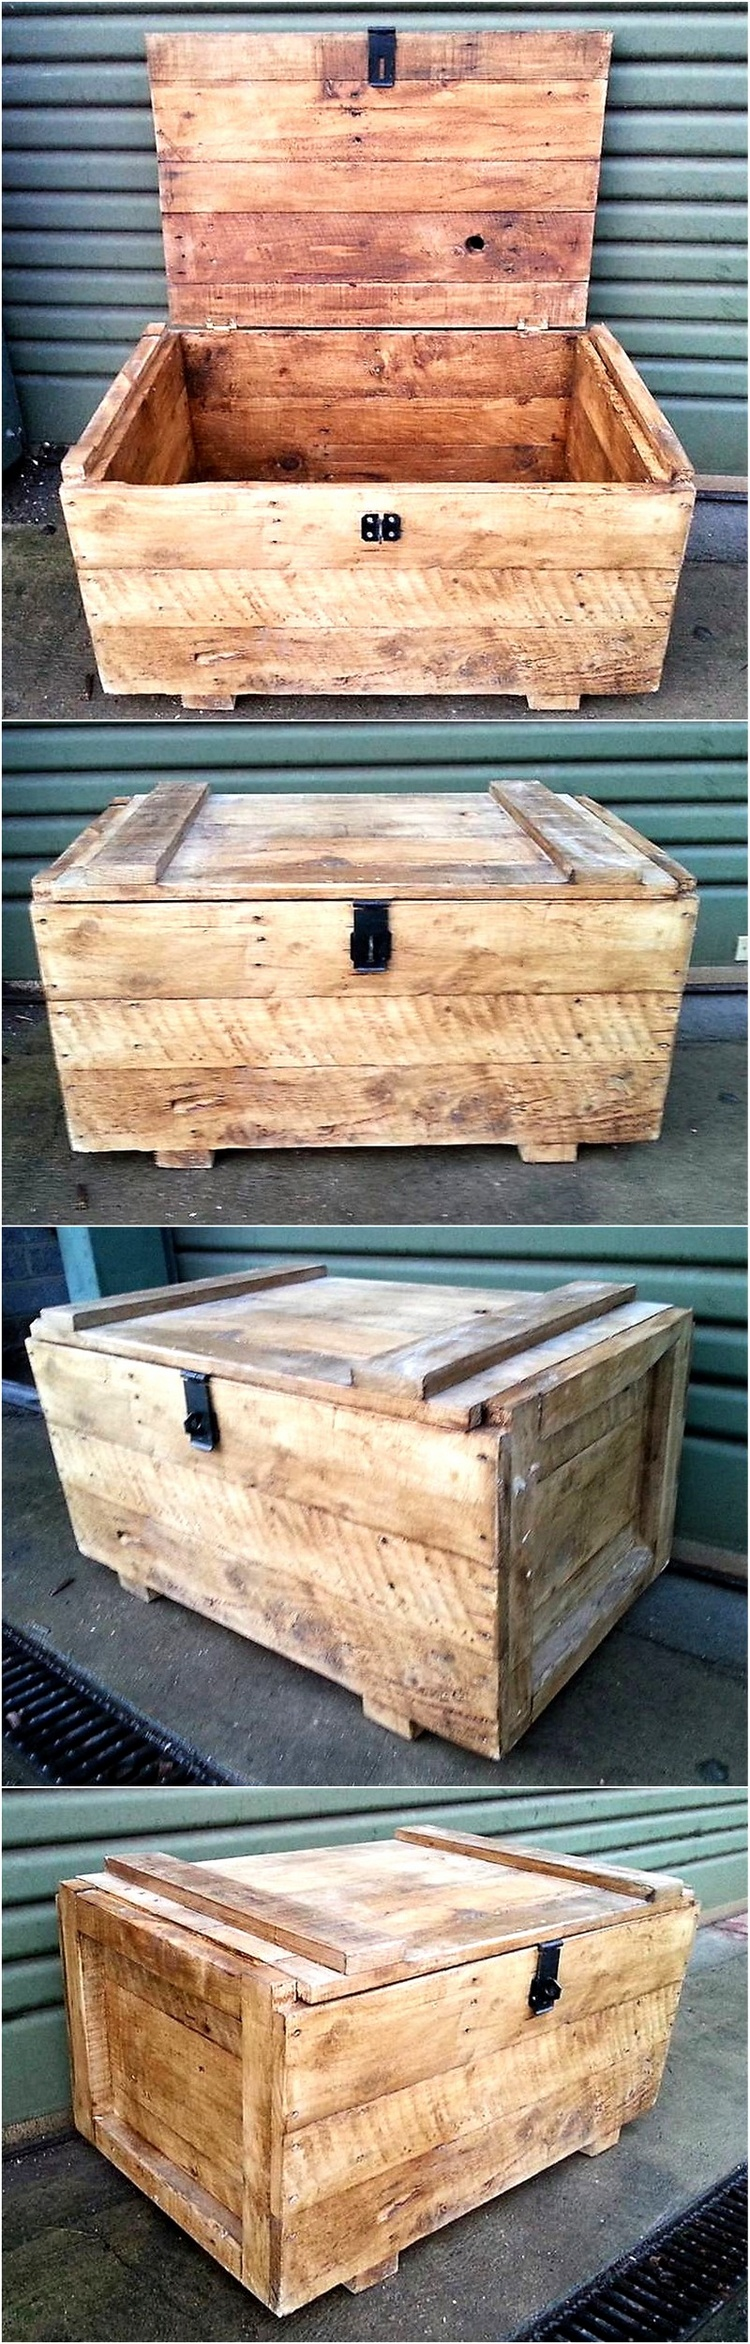 Rustic look pallet creations by p b woodcraft wood